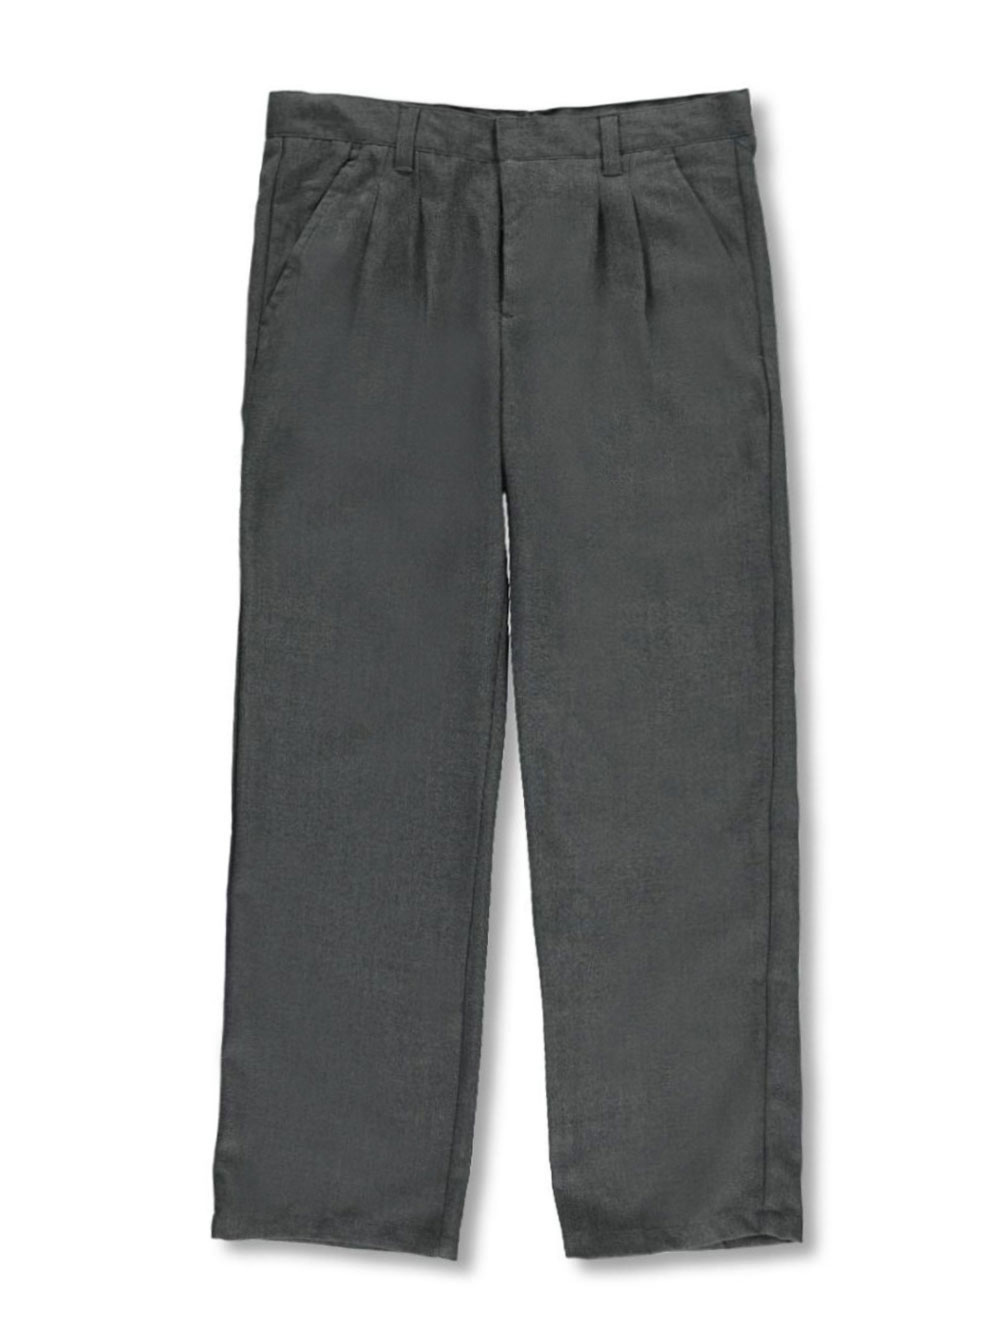 Size 12 Pants for Boys